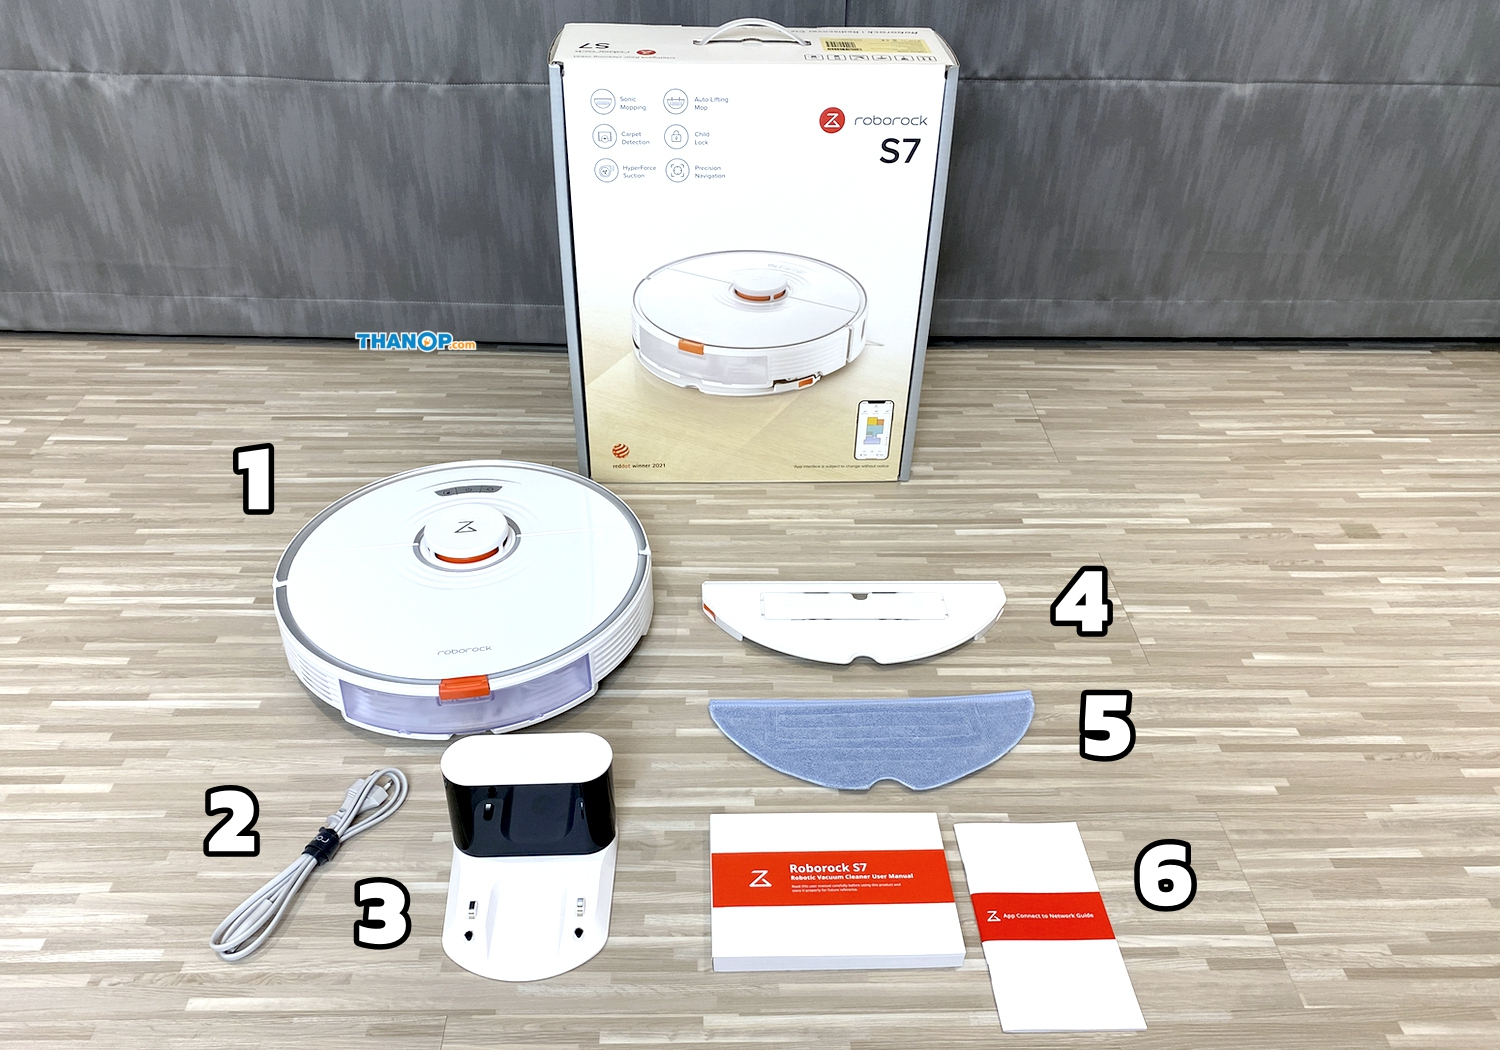 Roborock S7 Working with Mopping Function